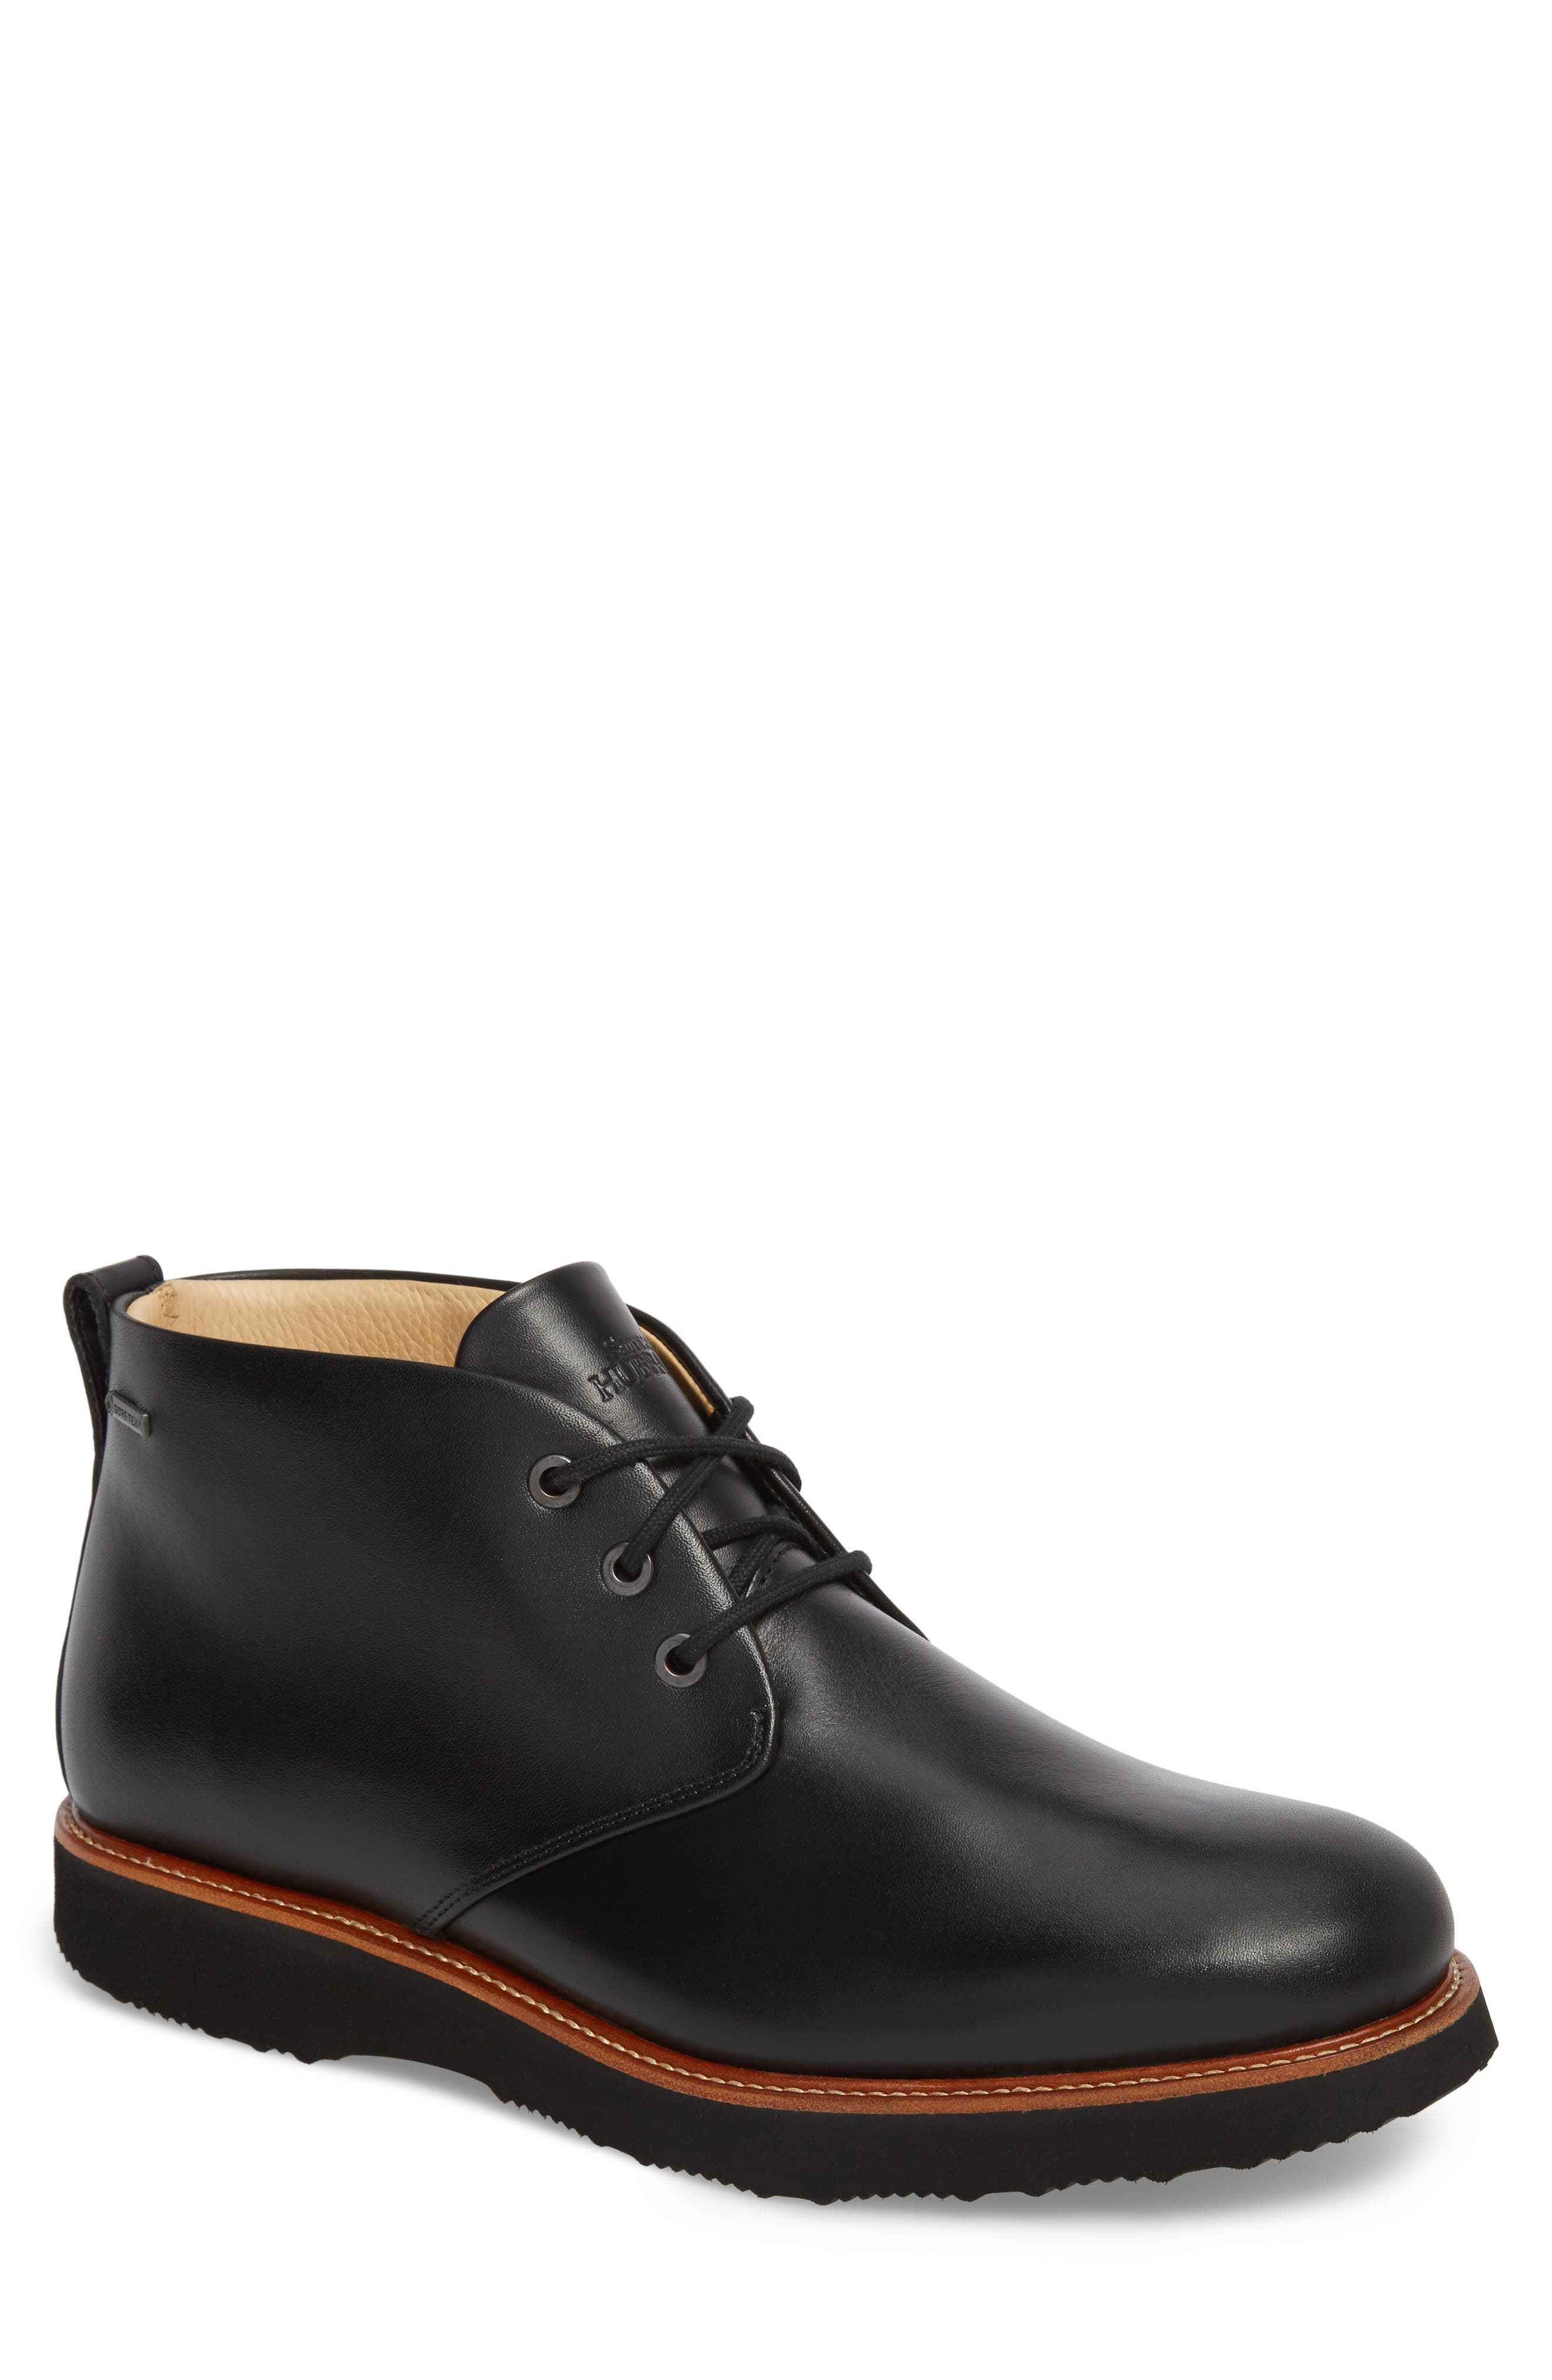 Re-Boot Waterproof Gore-Tex<sup>®</sup> Chukka Boot,                         Main,                         color, BLACK LEATHER